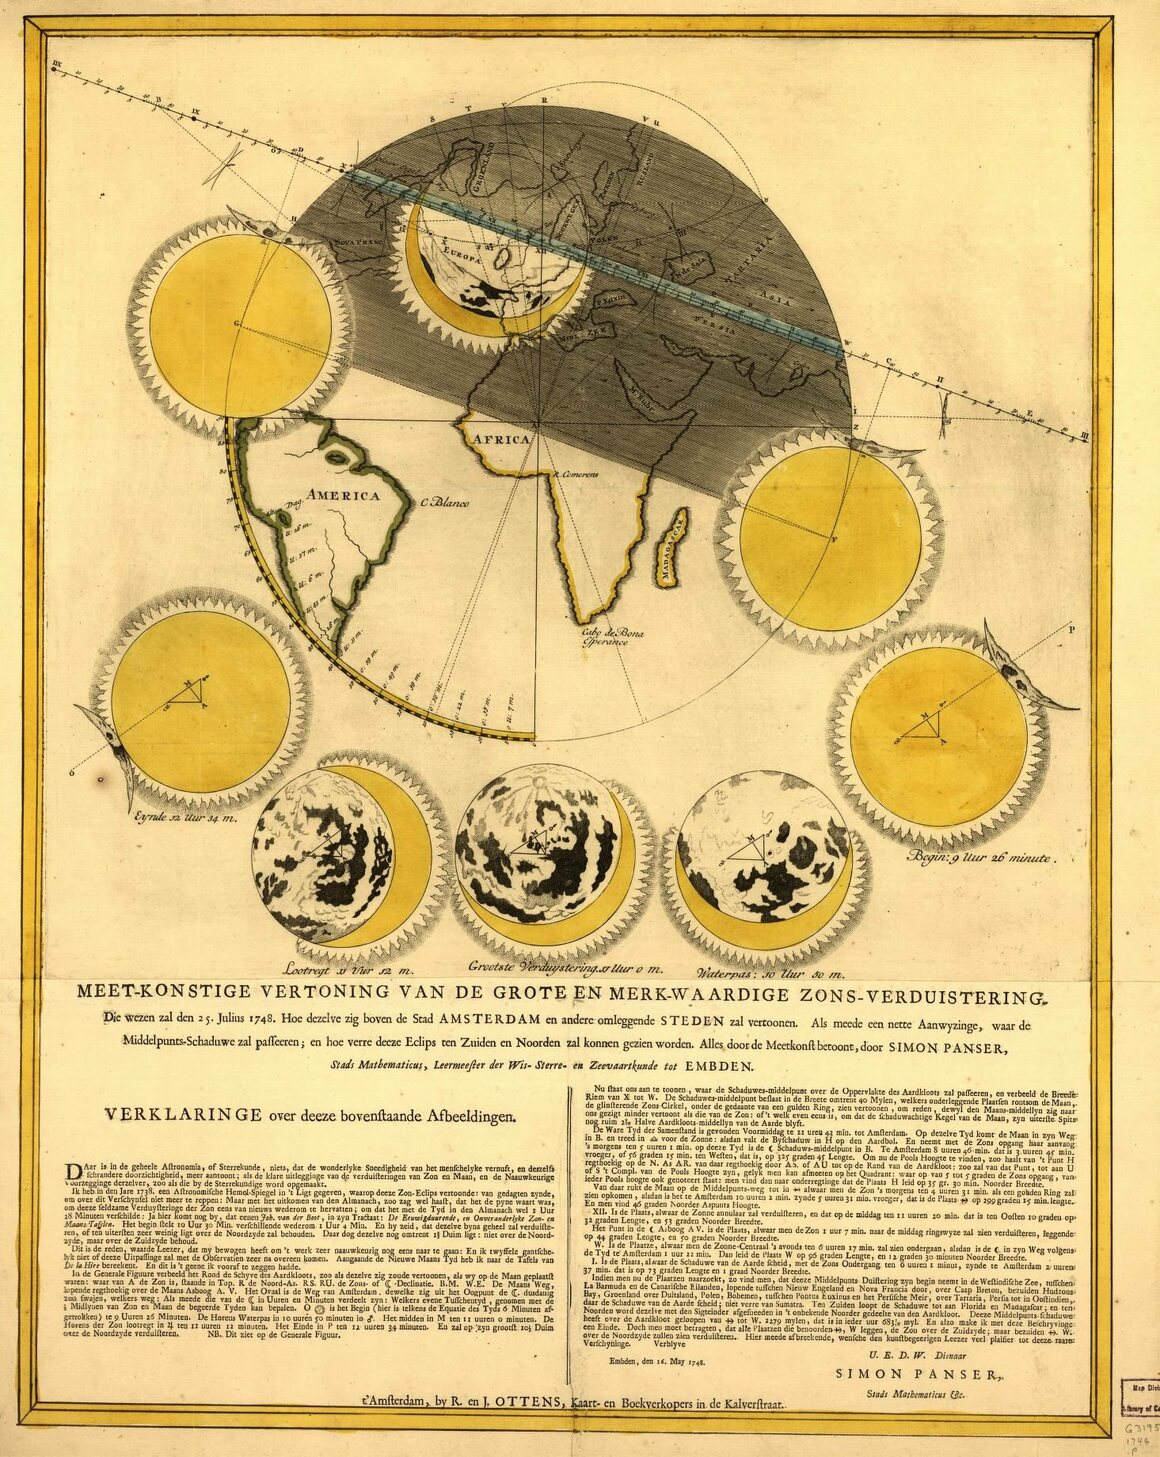 A Dutch eclipse map from 1748.